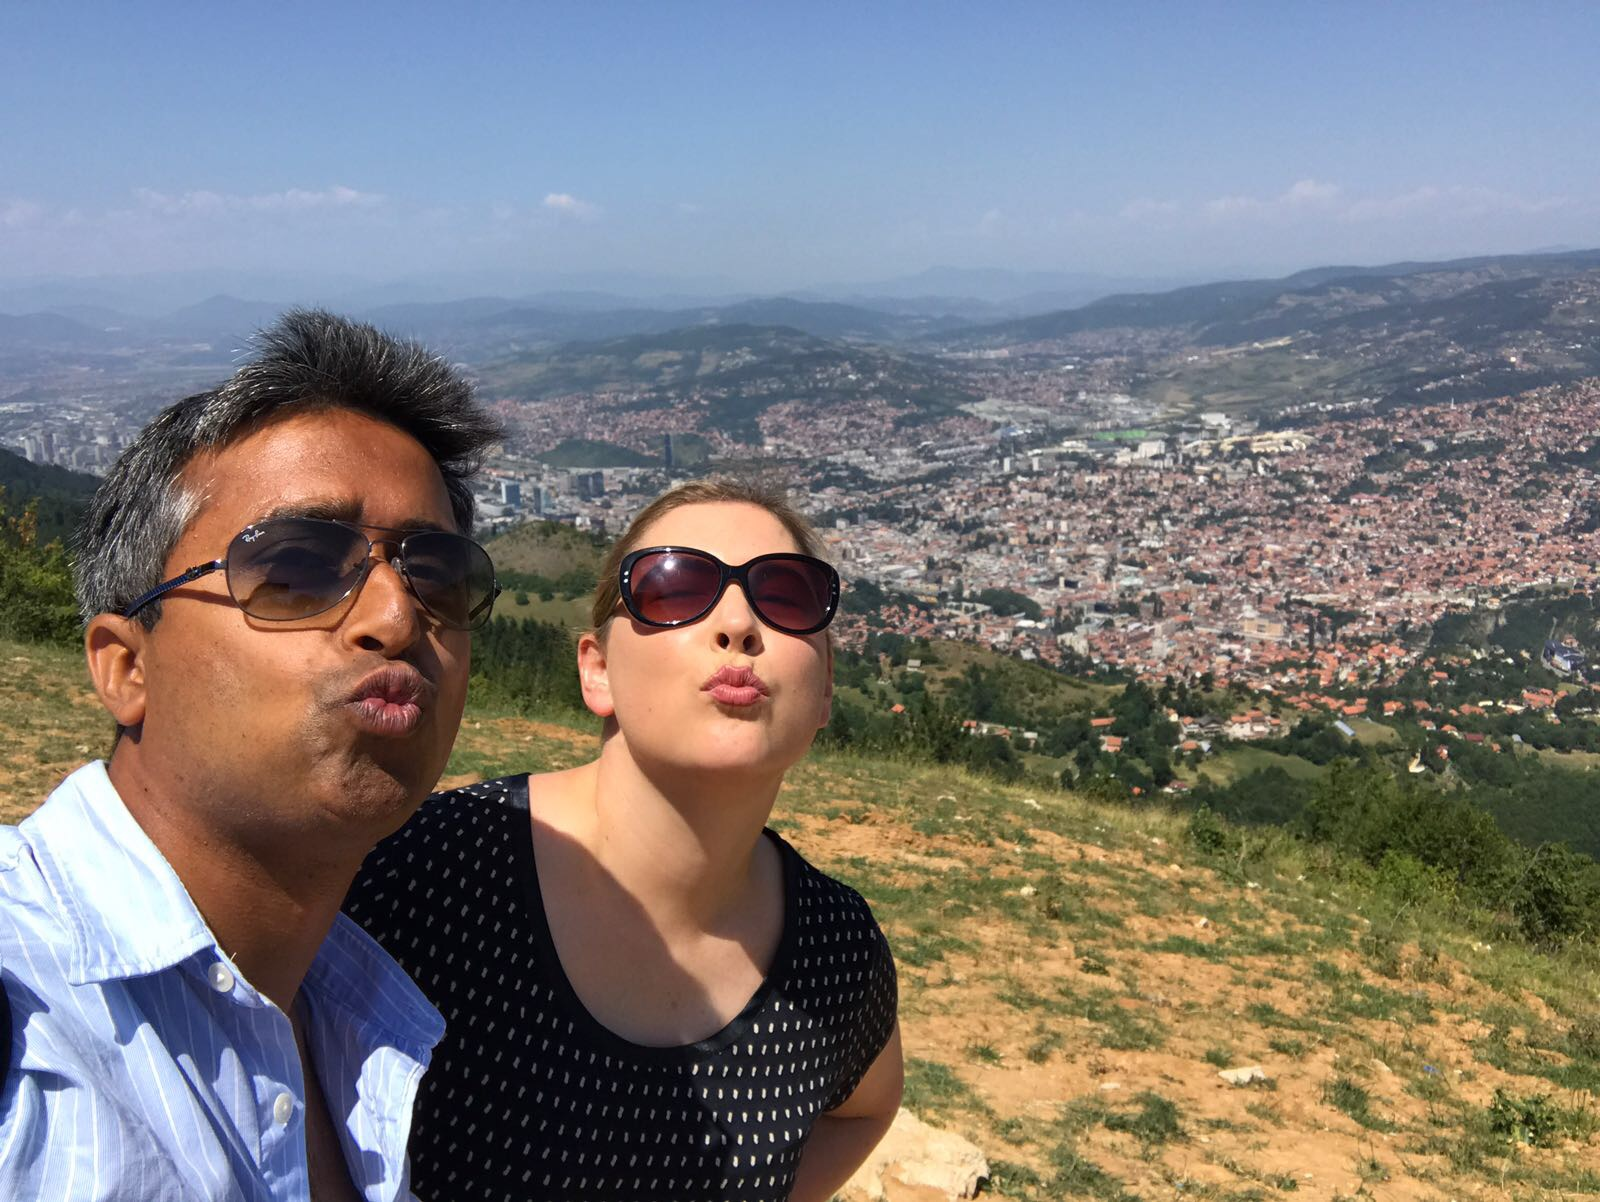 When Instagram accounts collide! I've been following  @wanderingsoul_kapil  for awhile because his photos of Europe are stunning 🙌 When we realised we'd cross paths in Bosnia, we met up. Here's us acting like fools on Trebević Mountain 🤗